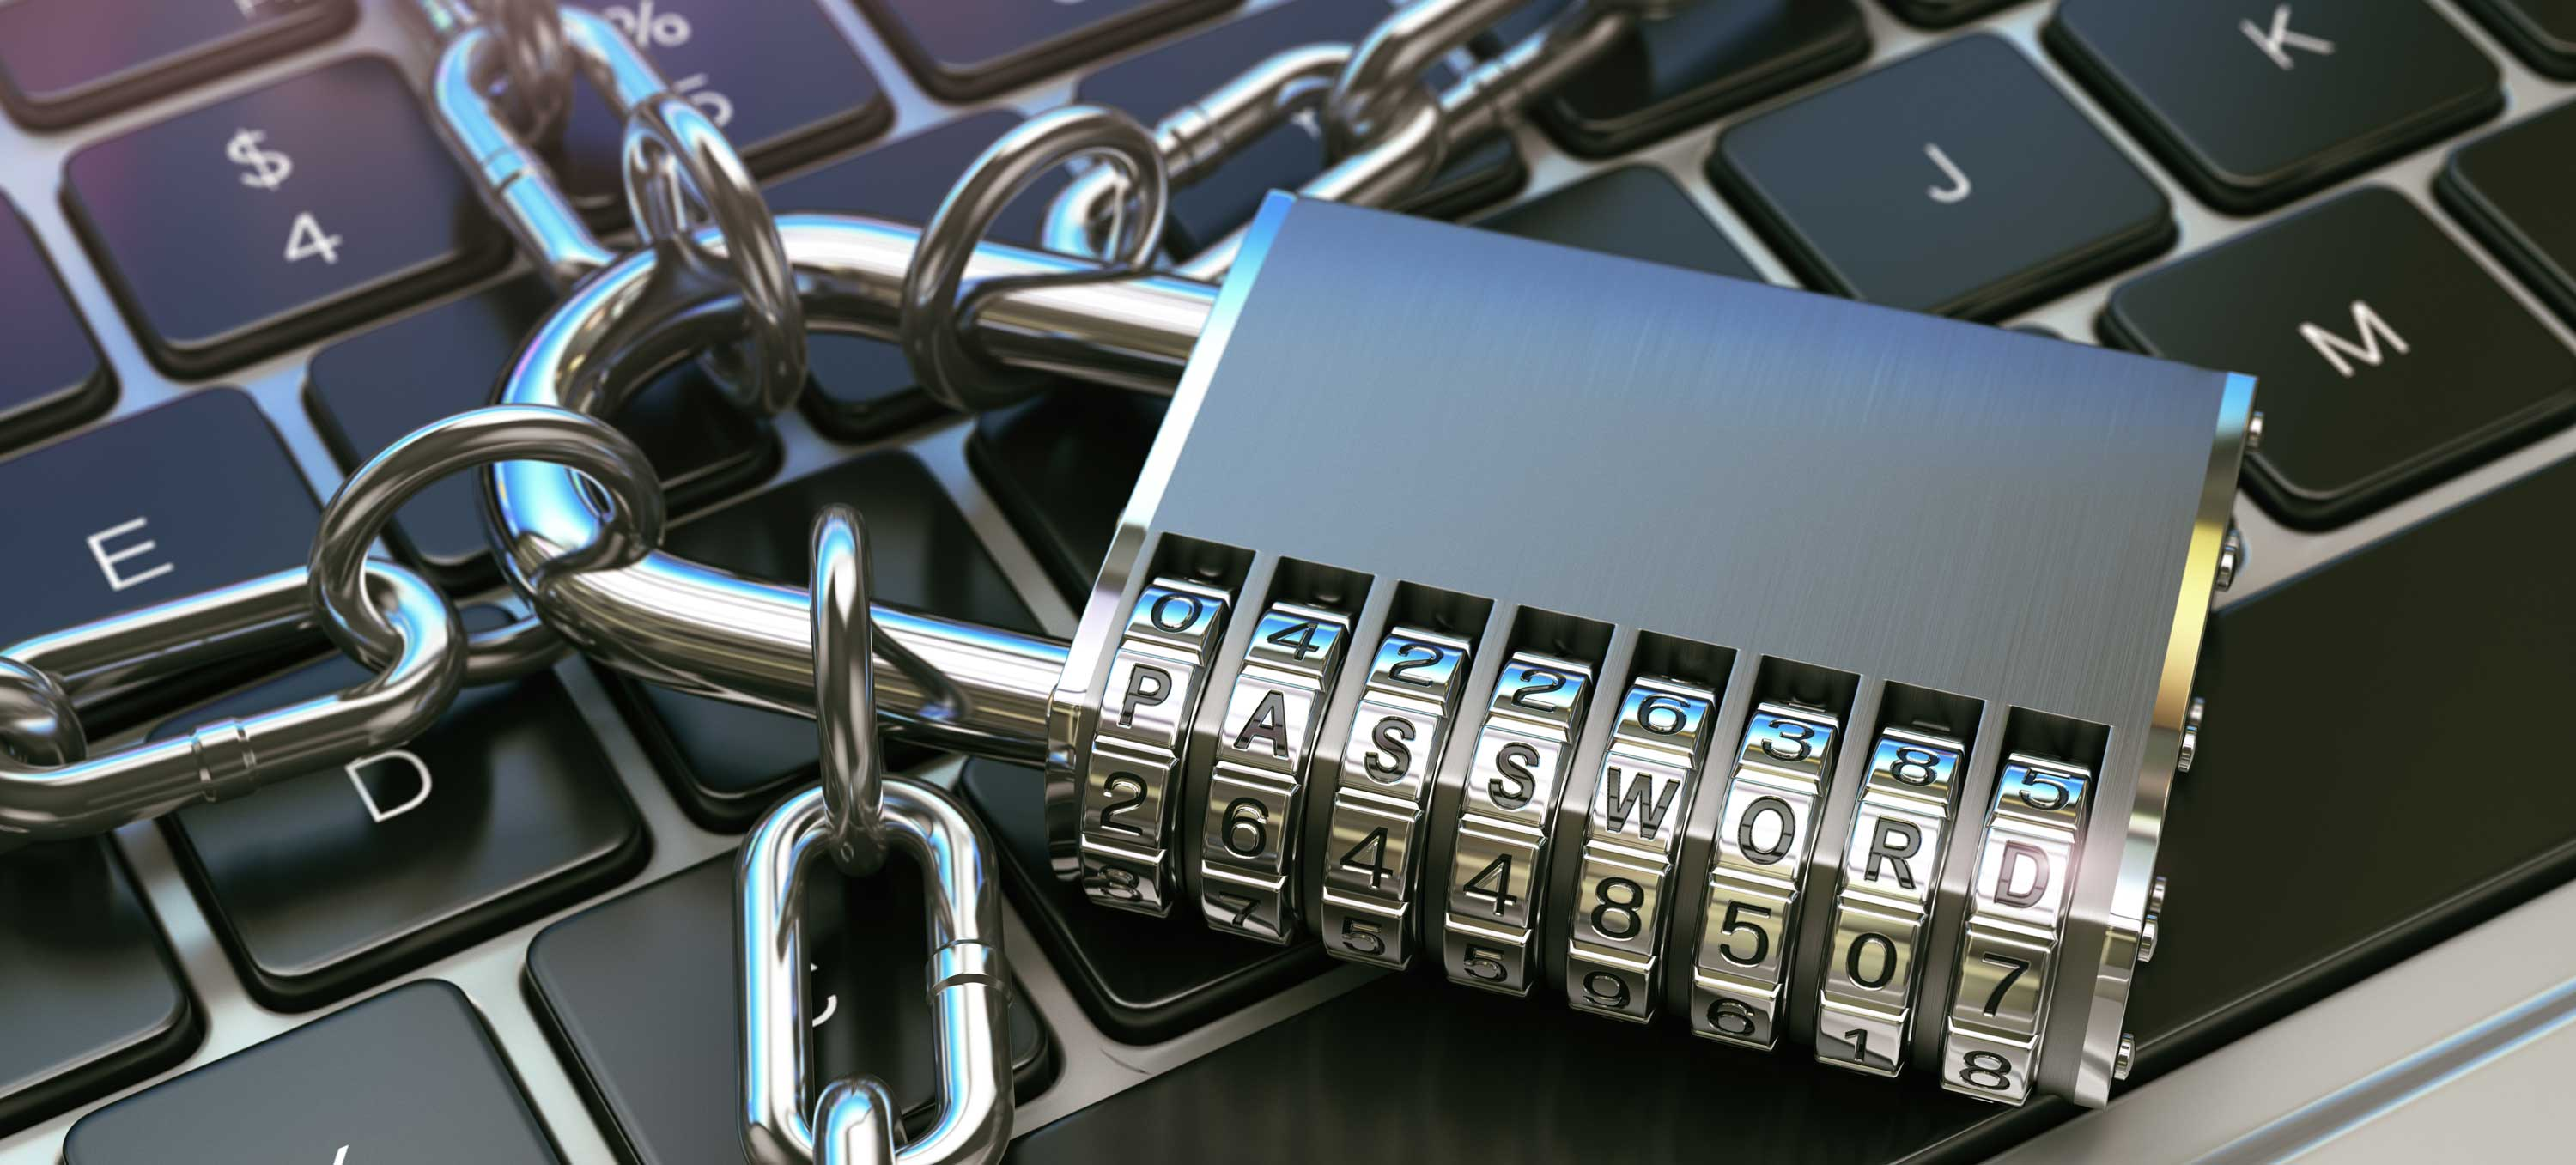 password-computer-security-or-safety-concept-PBUAQ8A